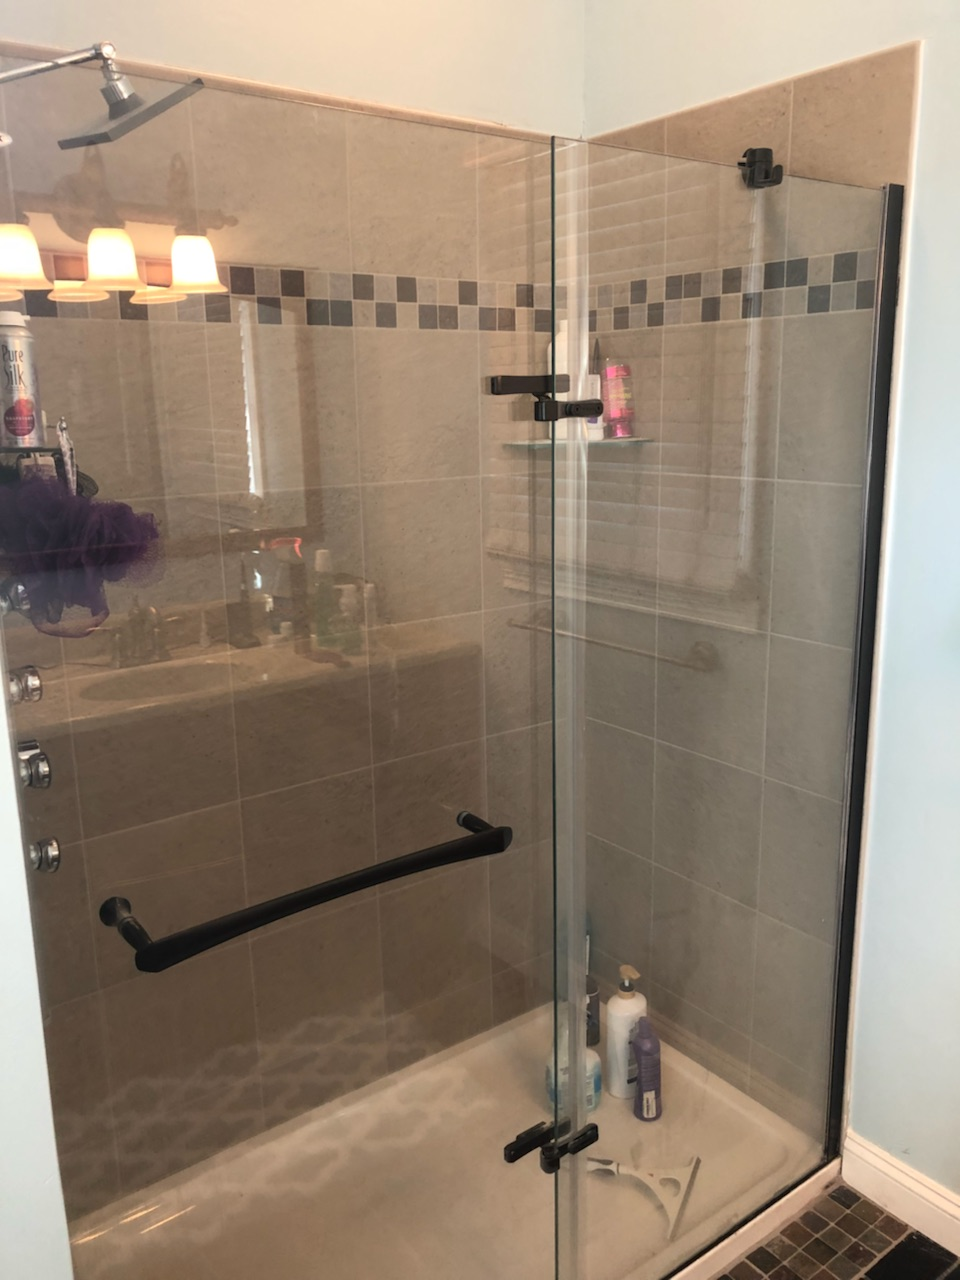 new shower.jpg